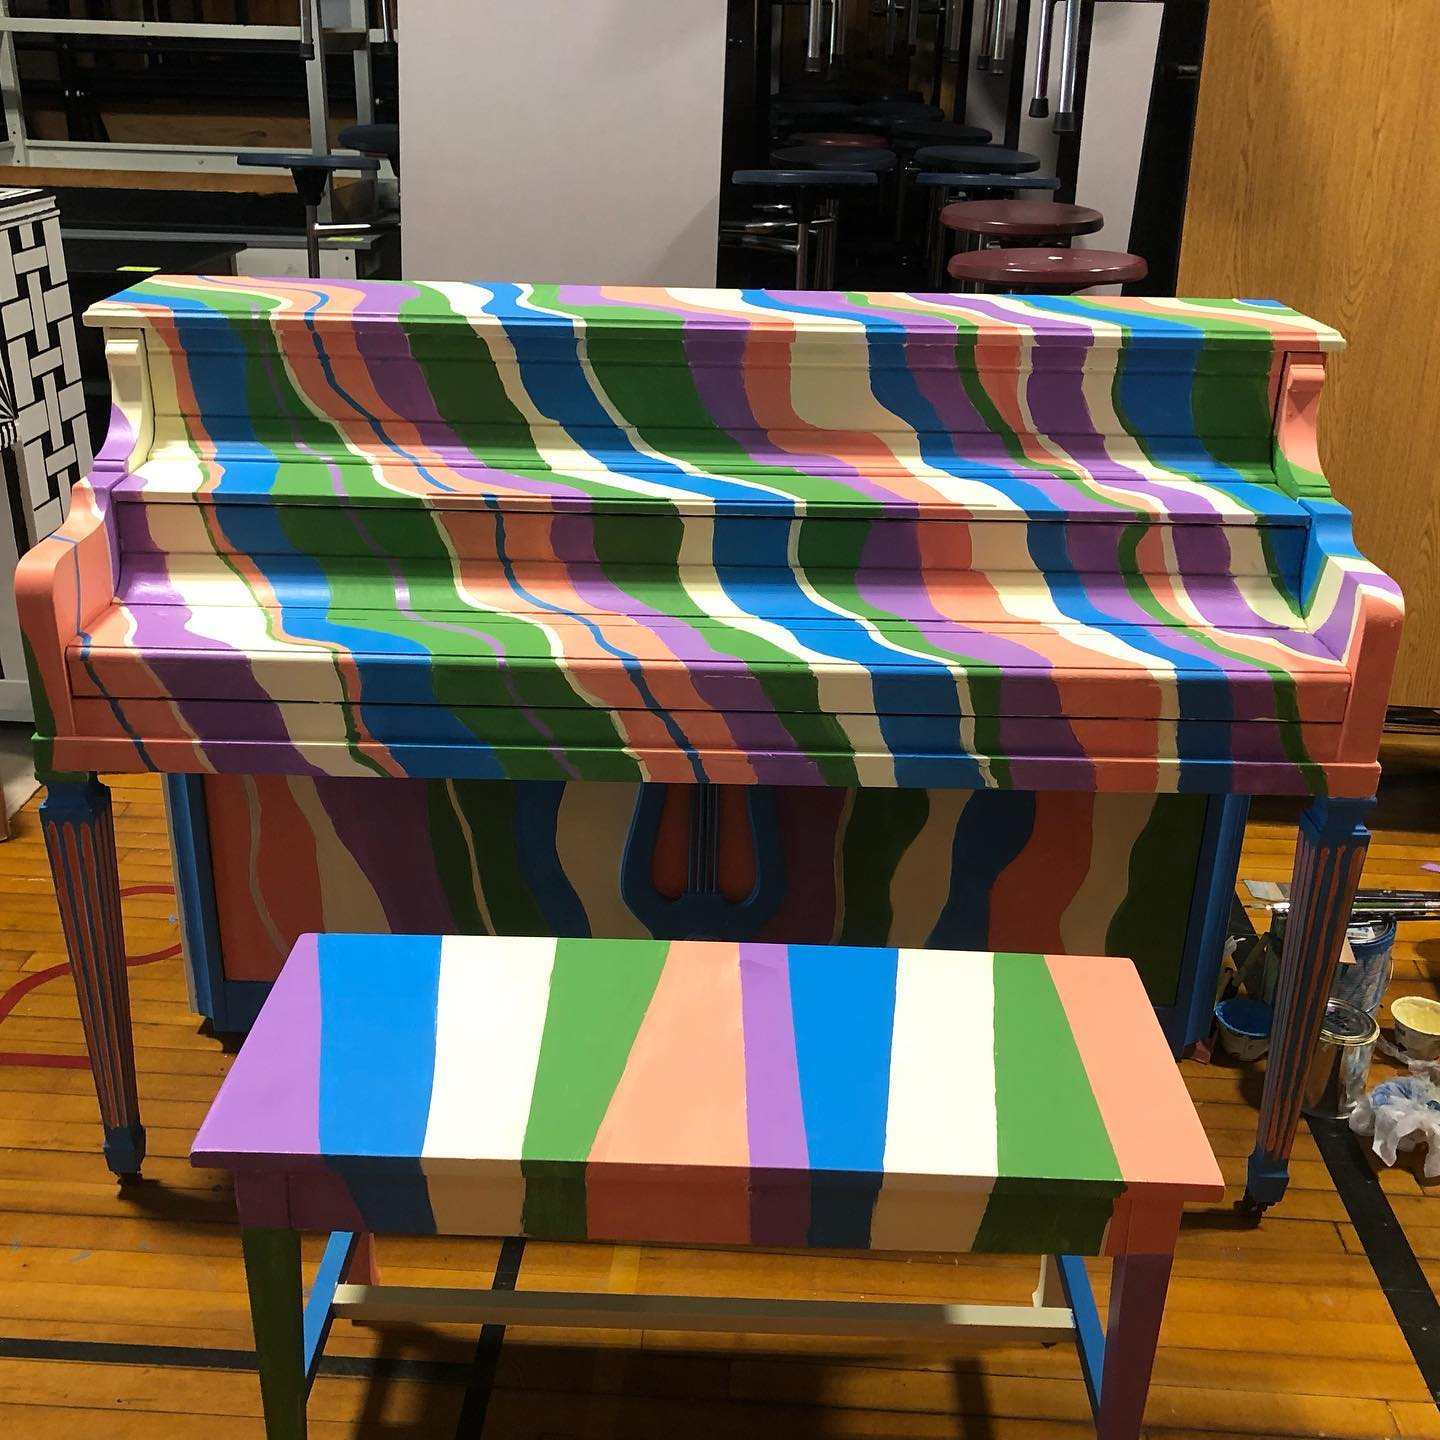 Colorful Swirls on a Piano